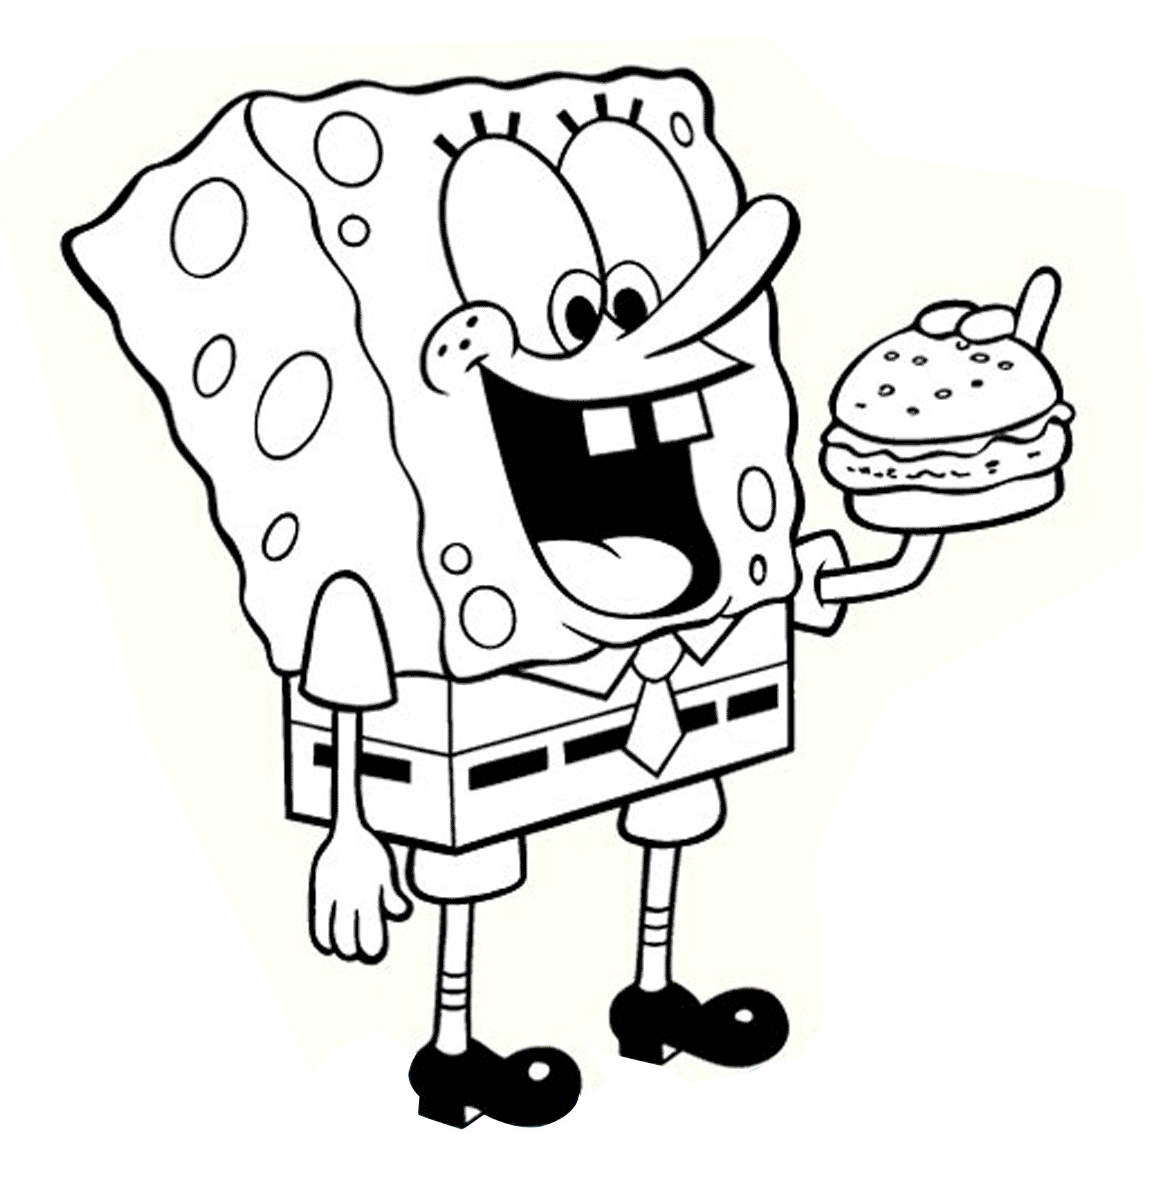 Colouring sheets to colour - Spongebob Coloring Pages To Print Spongebob Coloring Pages Free Printable Download